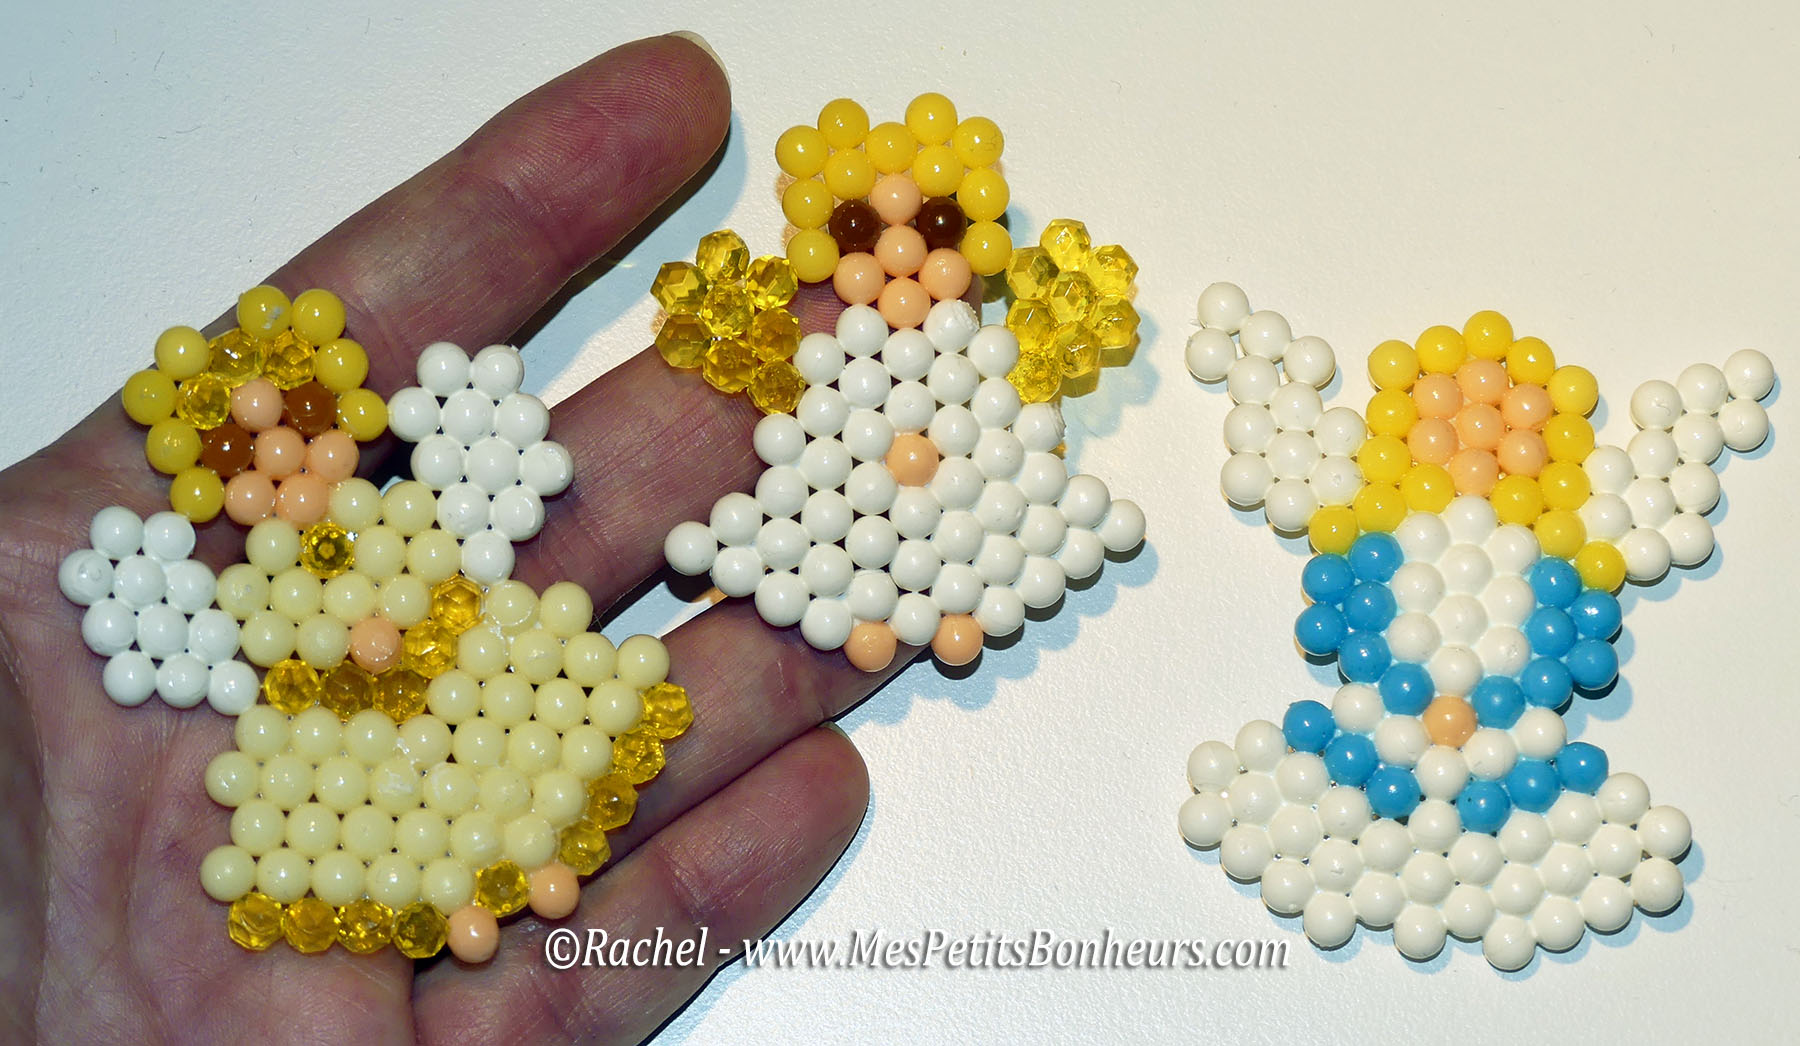 anges-deco-noel-perles-a-souder-aquabeads